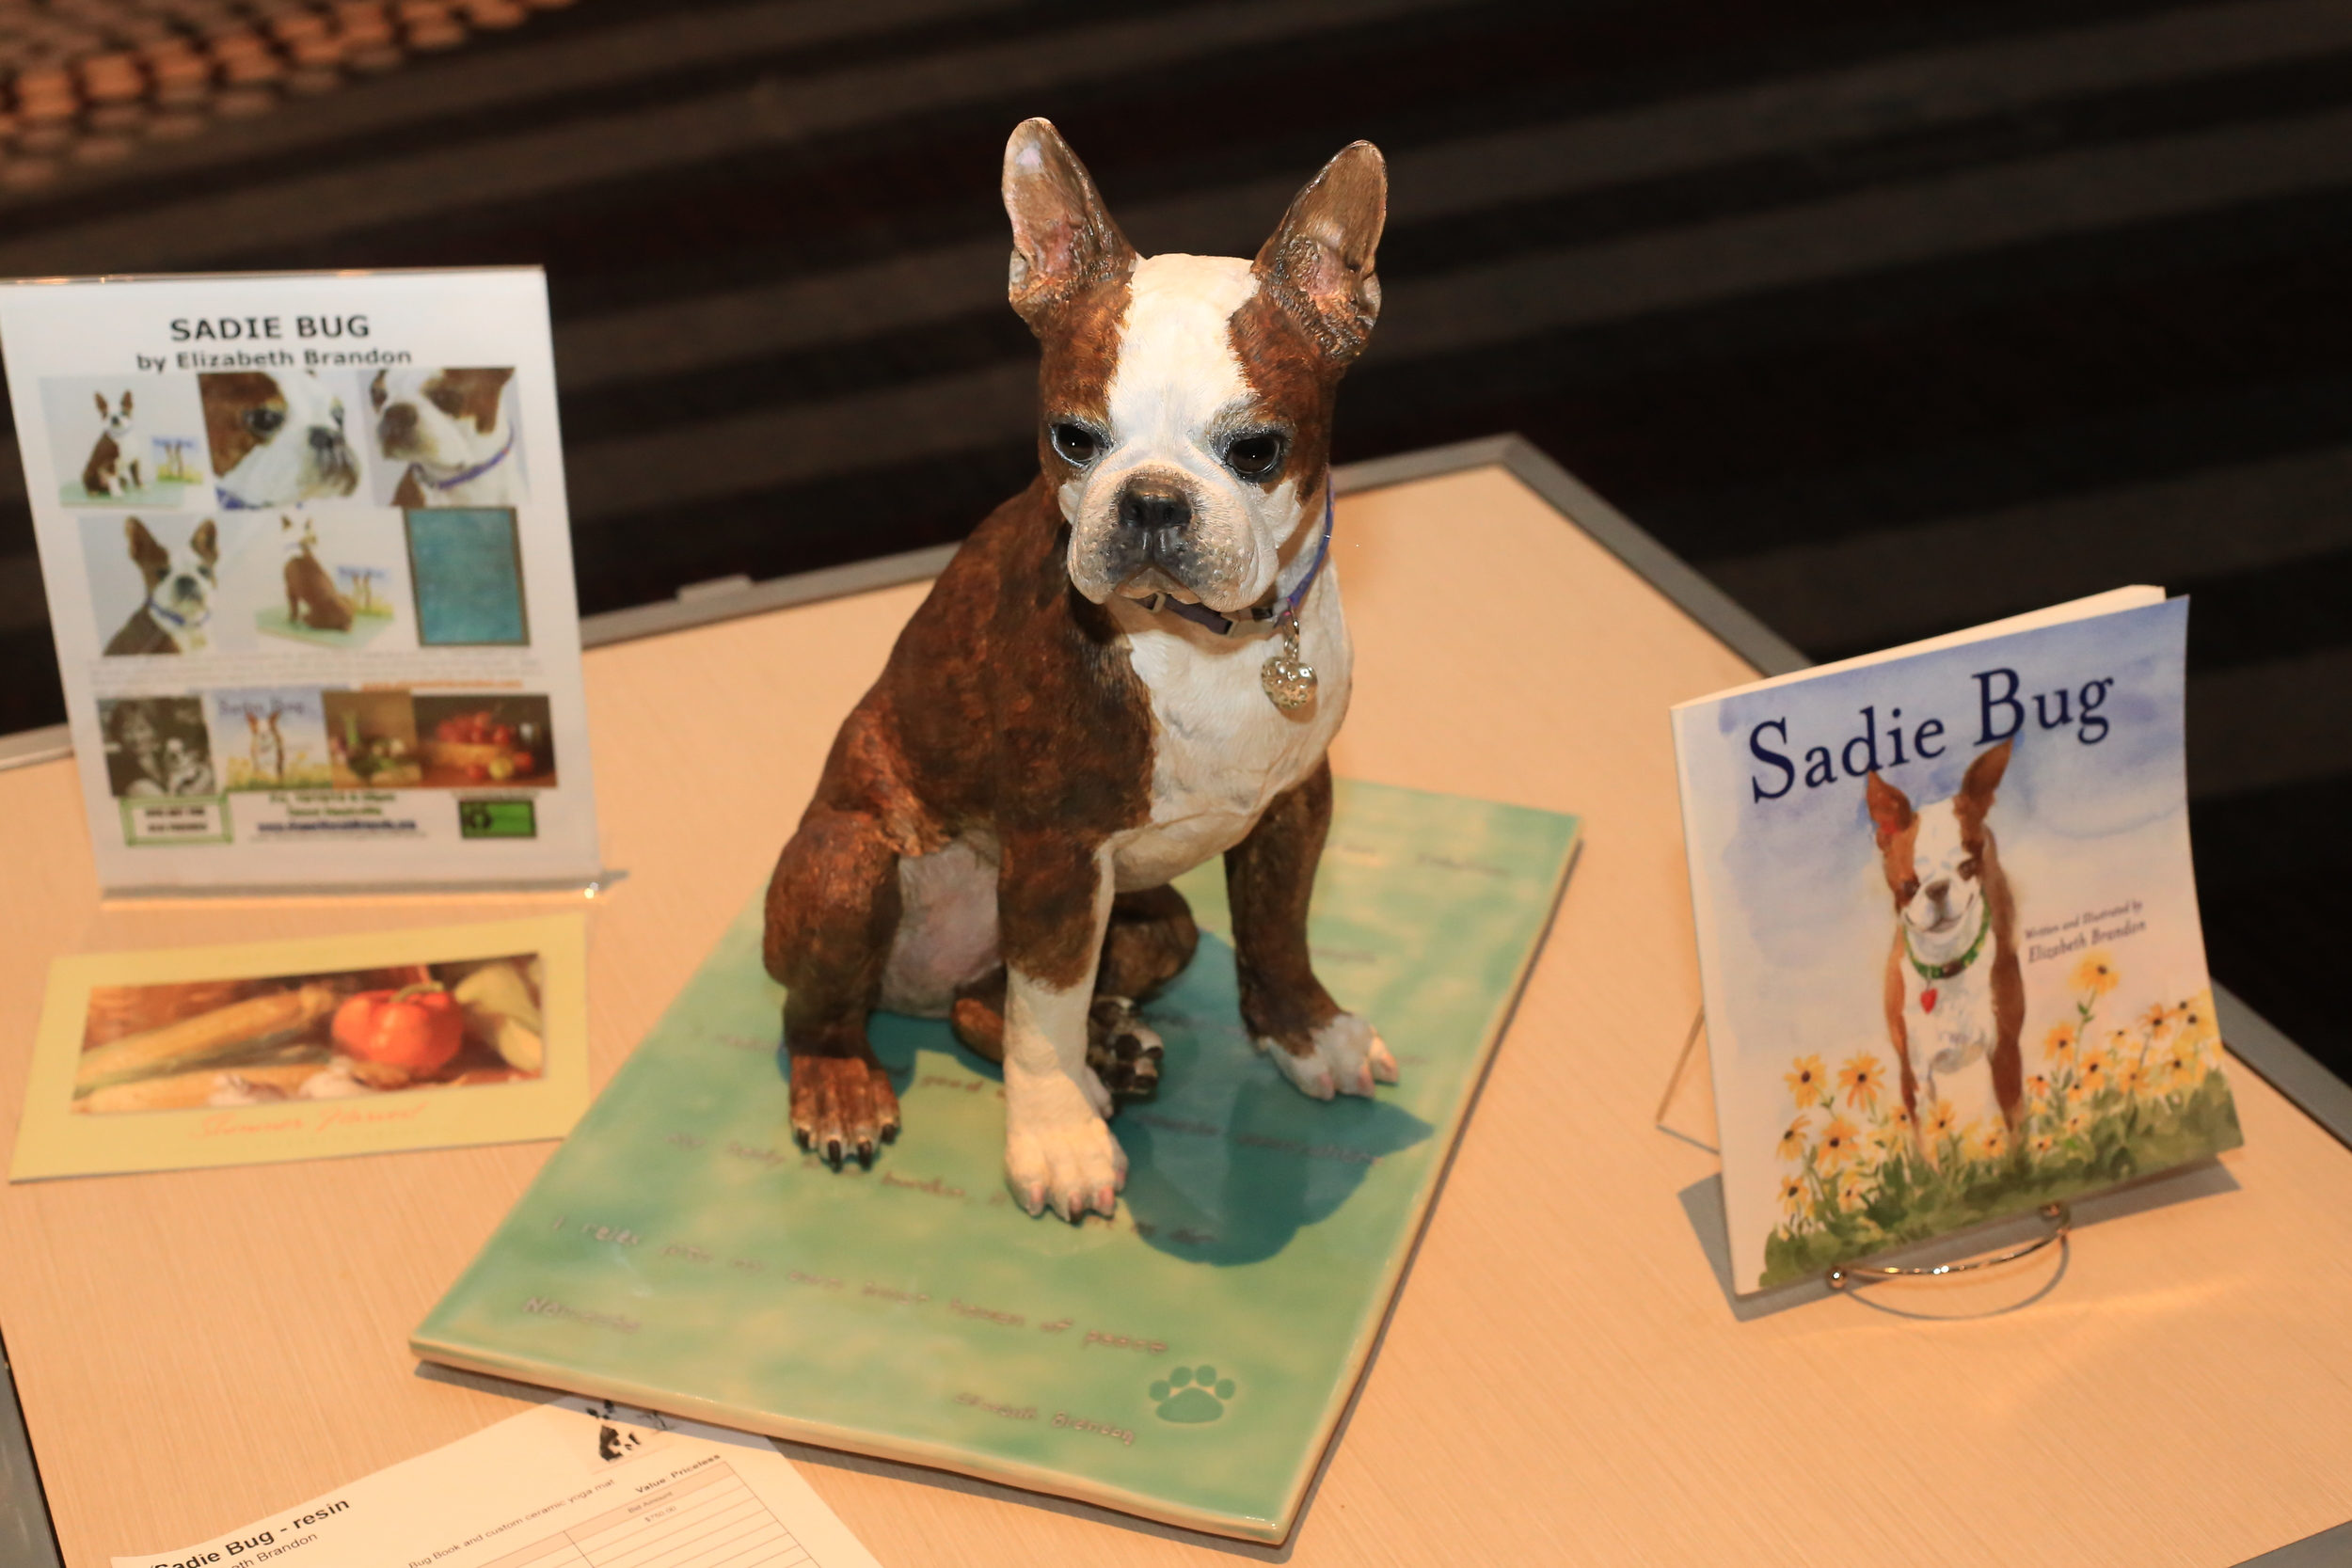 Sadie Bug statue on display with her ceramic yoga mat and children's book for the live auction.